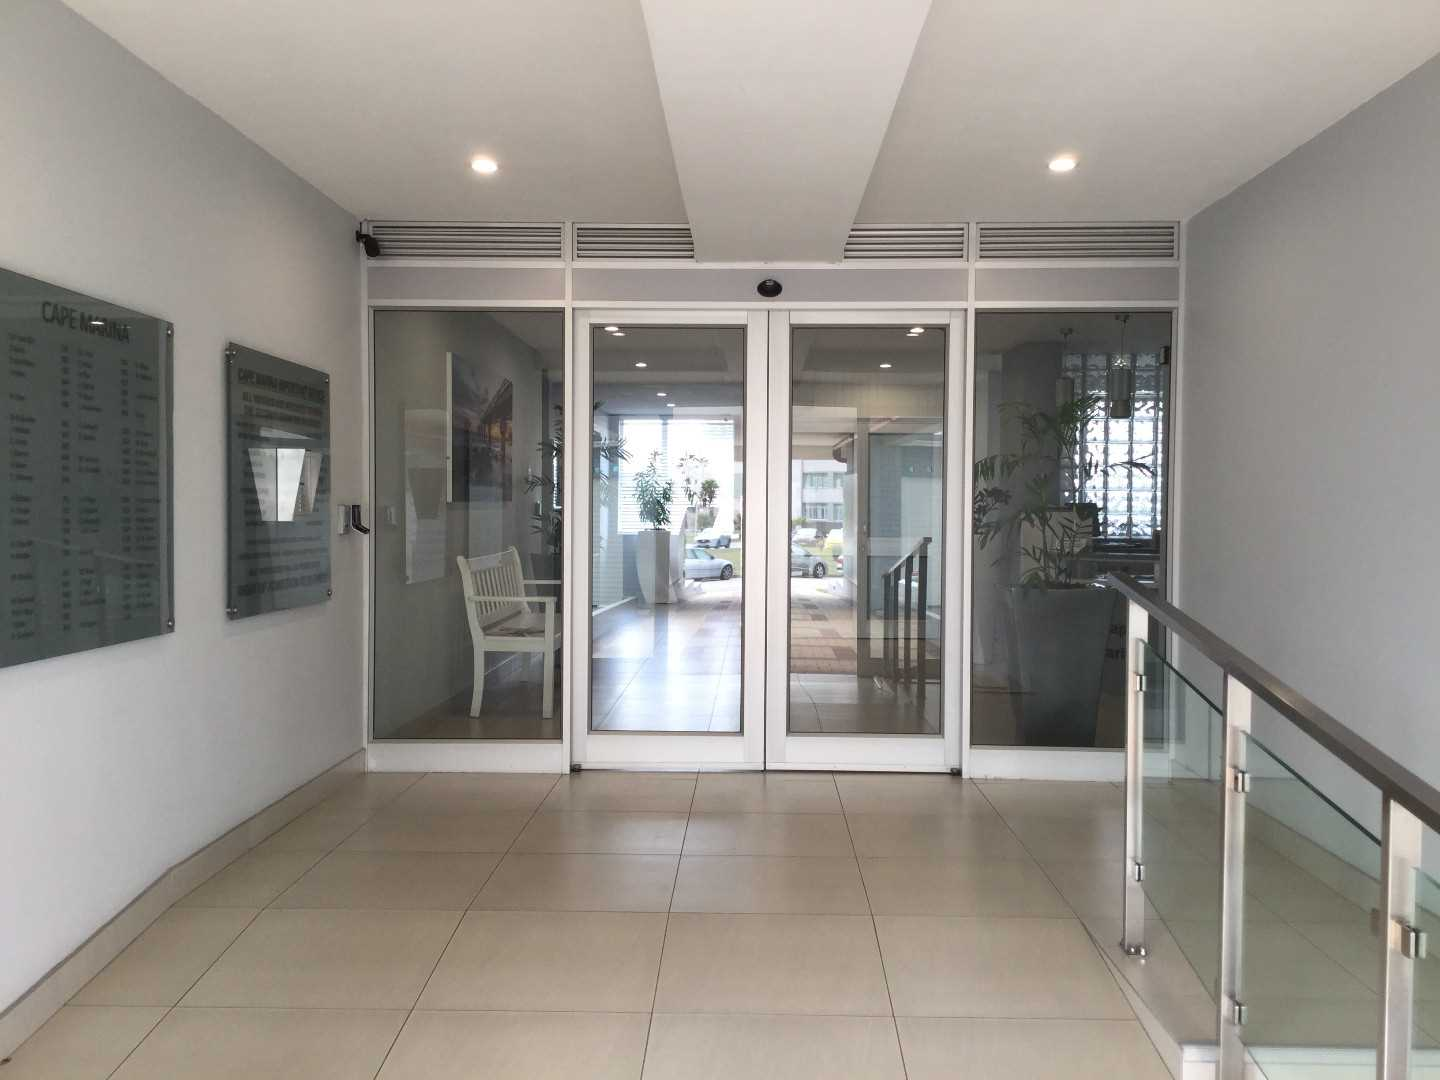 Front entrance - fingerprint access and security guard on duty